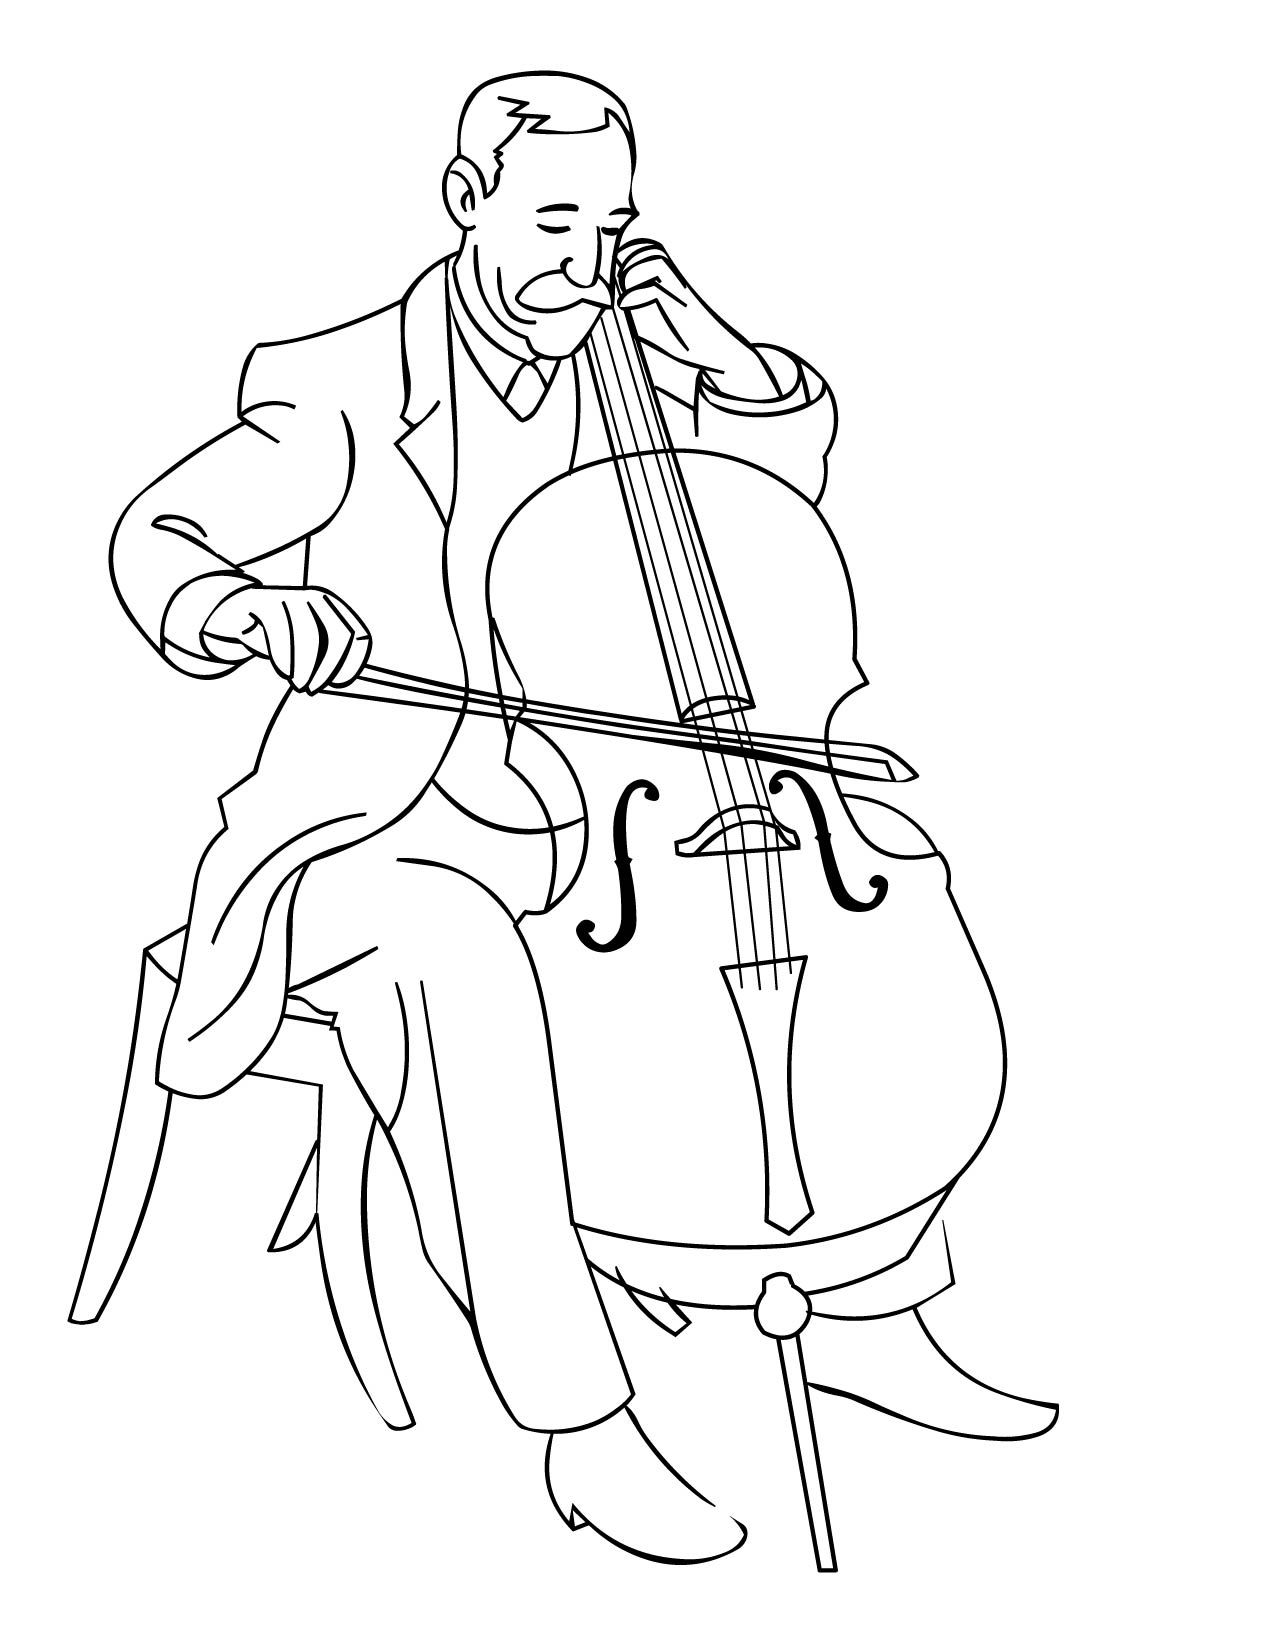 free printable coloring pages of musical instruments music coloring pages musical drums coloring drums kids coloring of pages musical instruments printable free